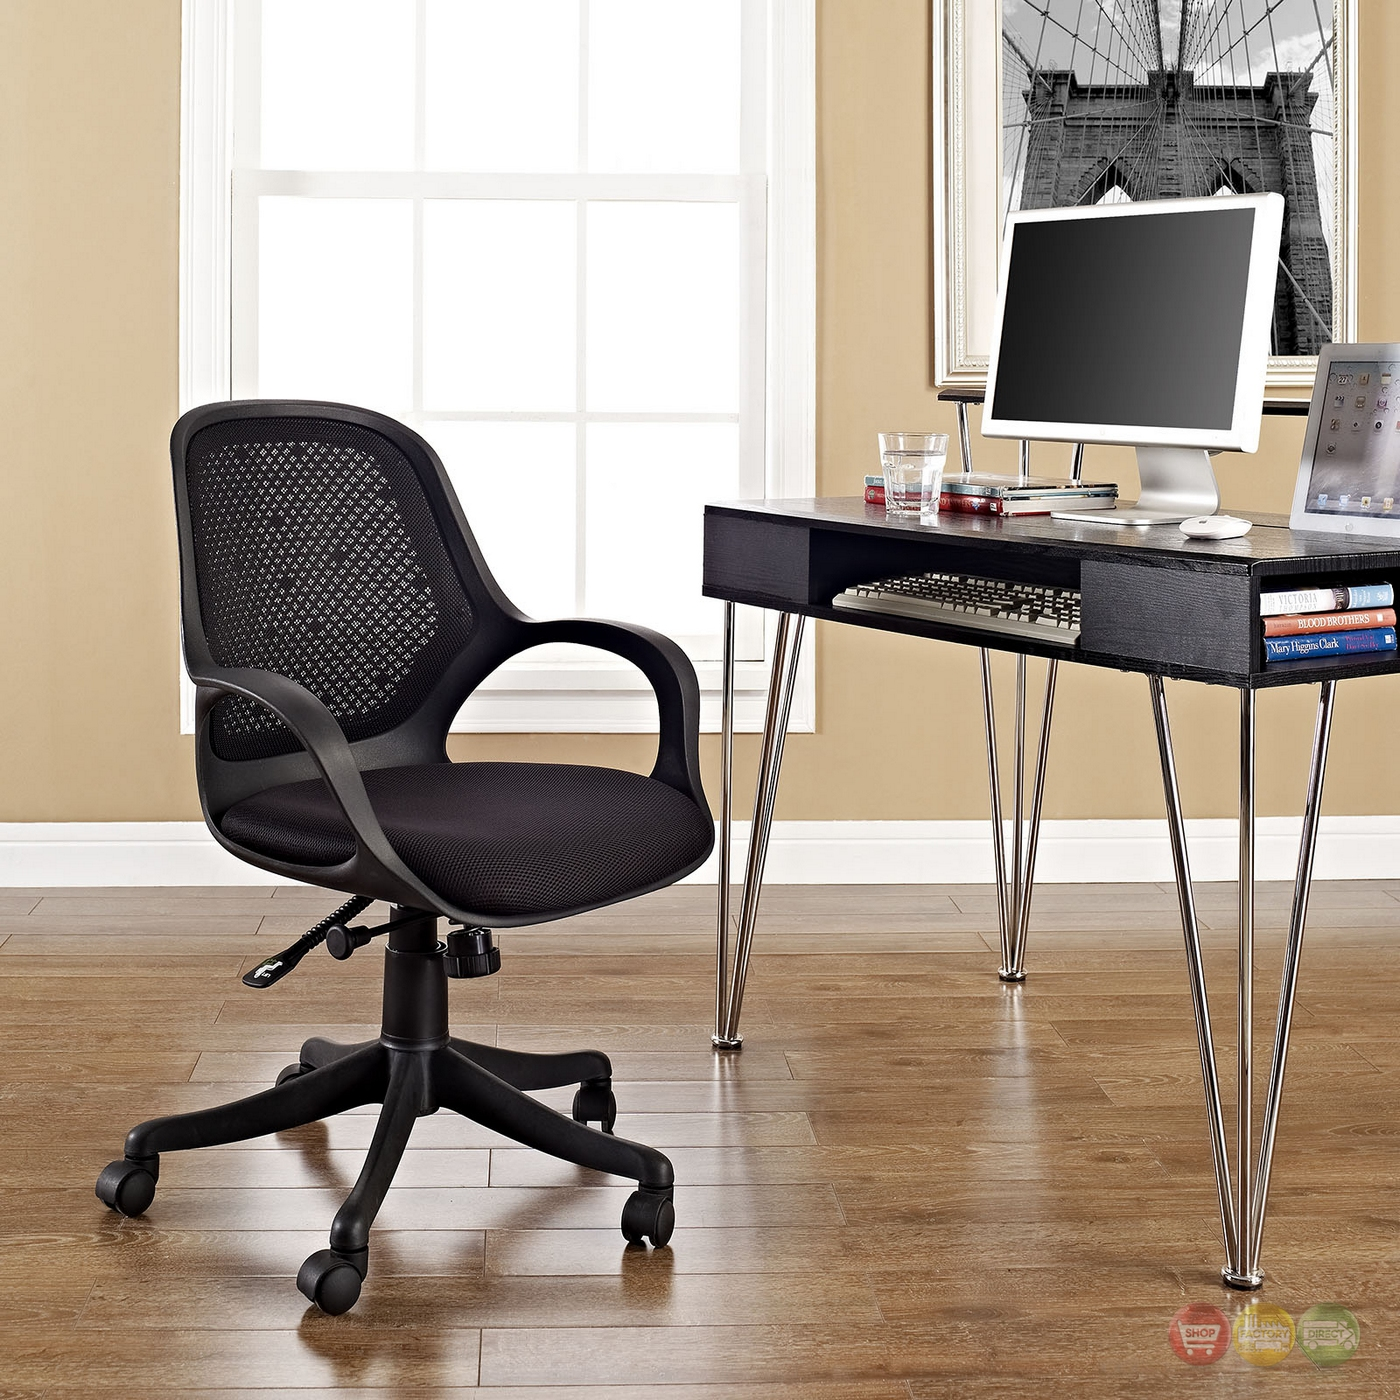 Mesh Ergonomic Office Chair Panorama Modern Ergonomic Adjustable Office Chair With